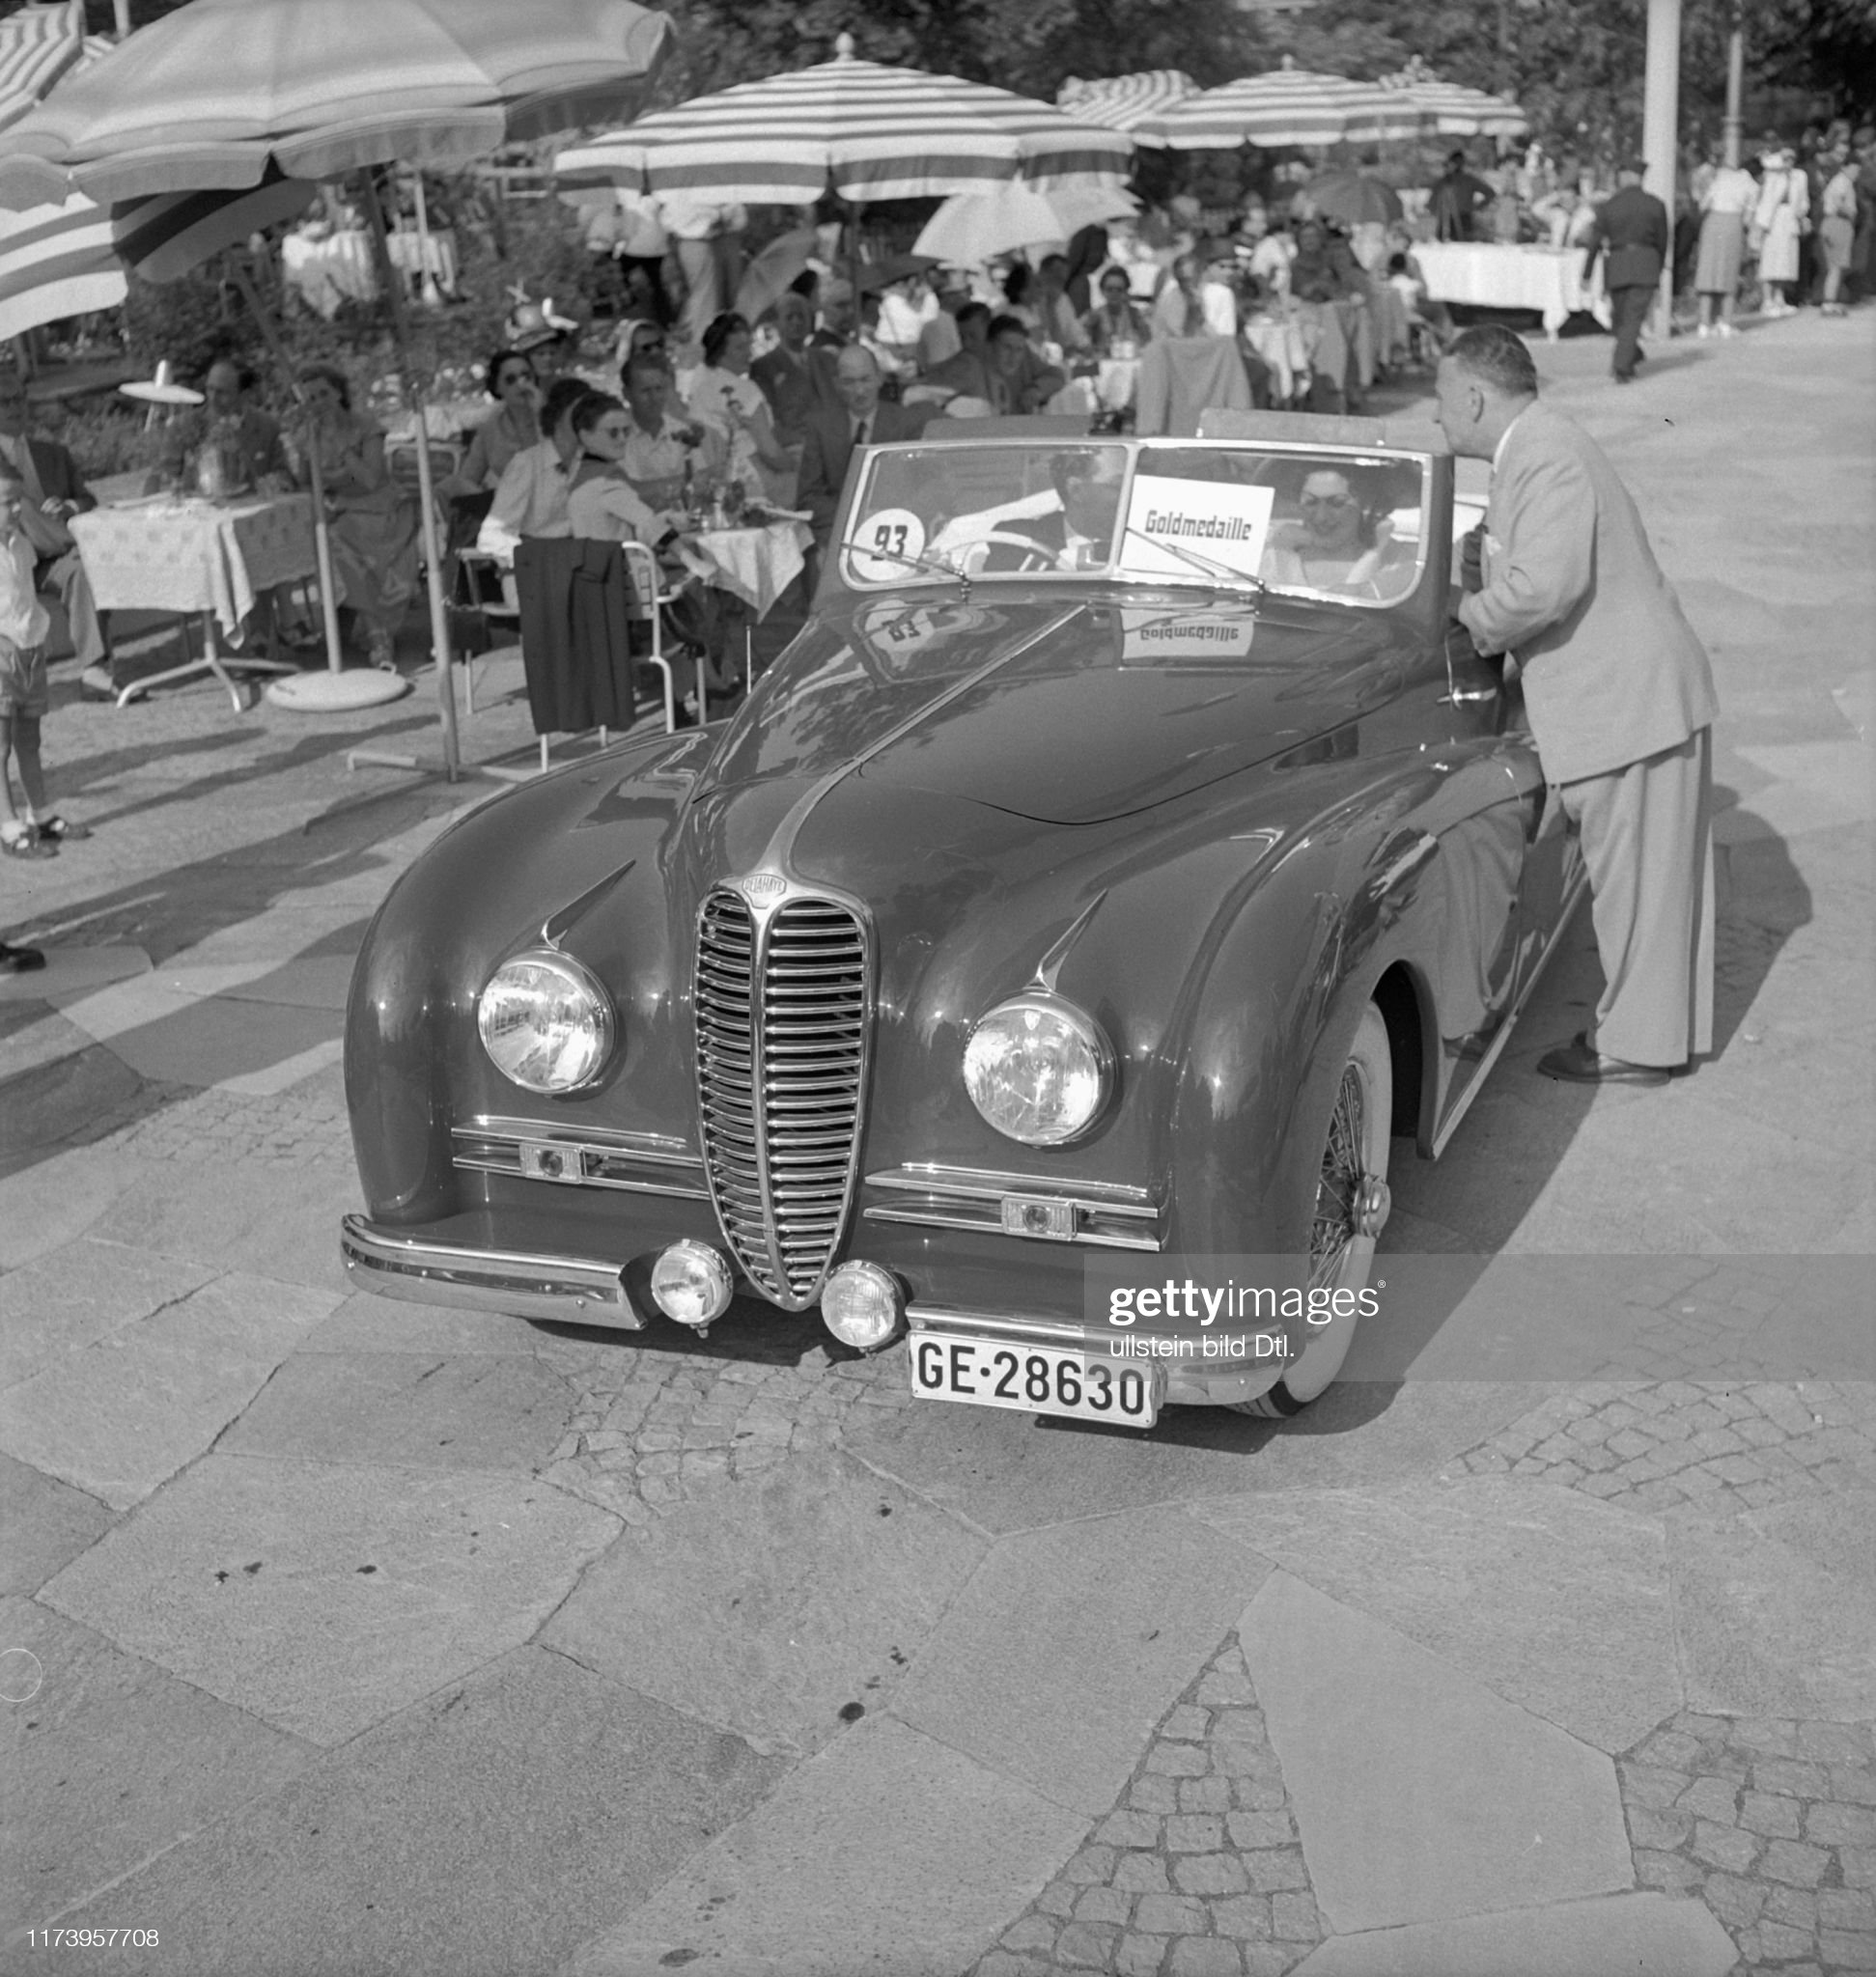 6th International car model beauty contest, Lucerne 1951: Delahaye 1950 : News Photo